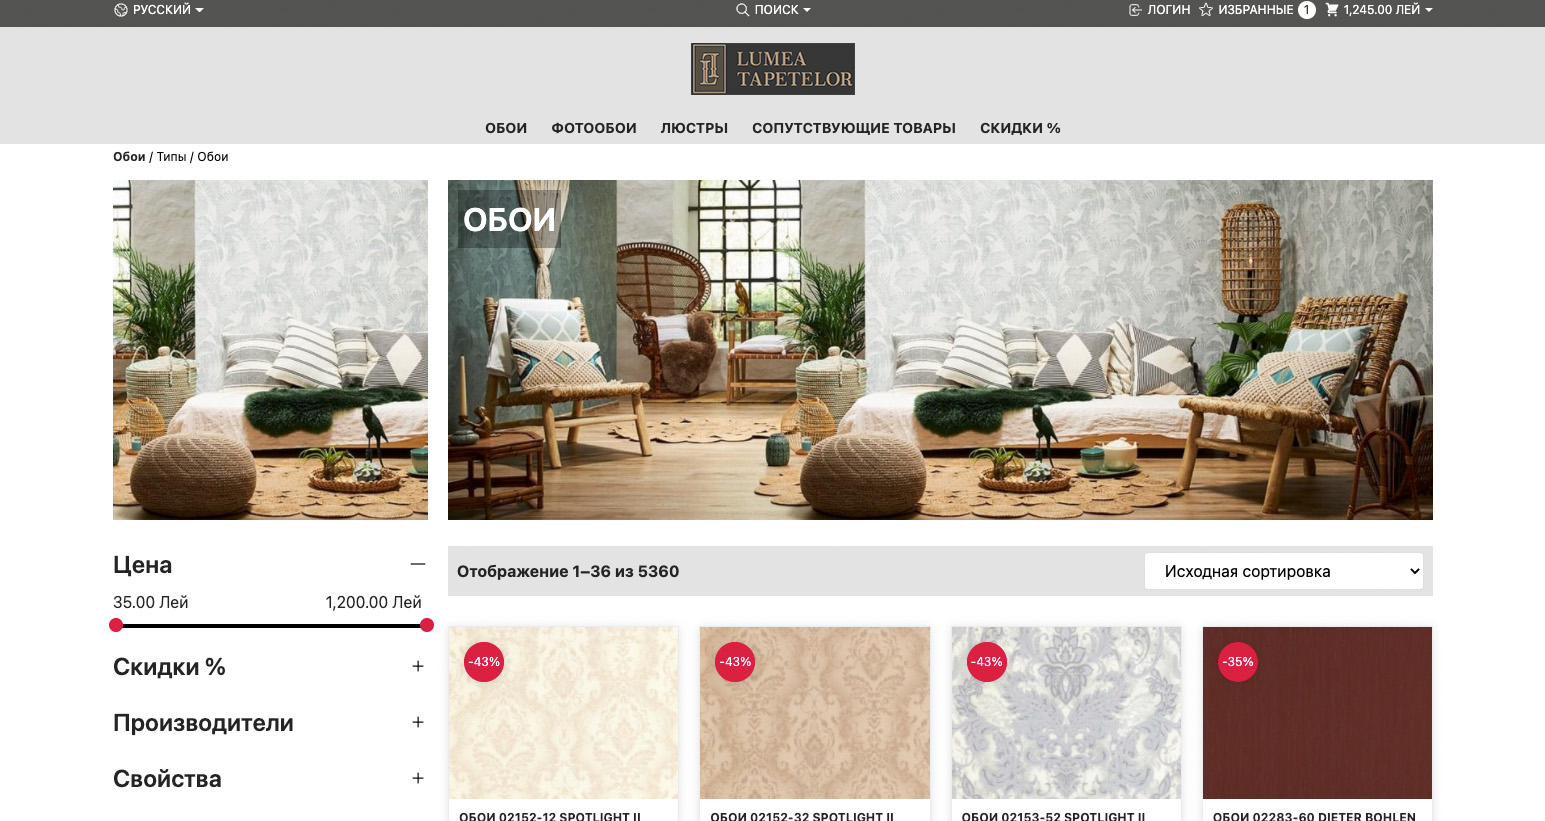 Redesign of the Lumea Tapetelor 13 online store